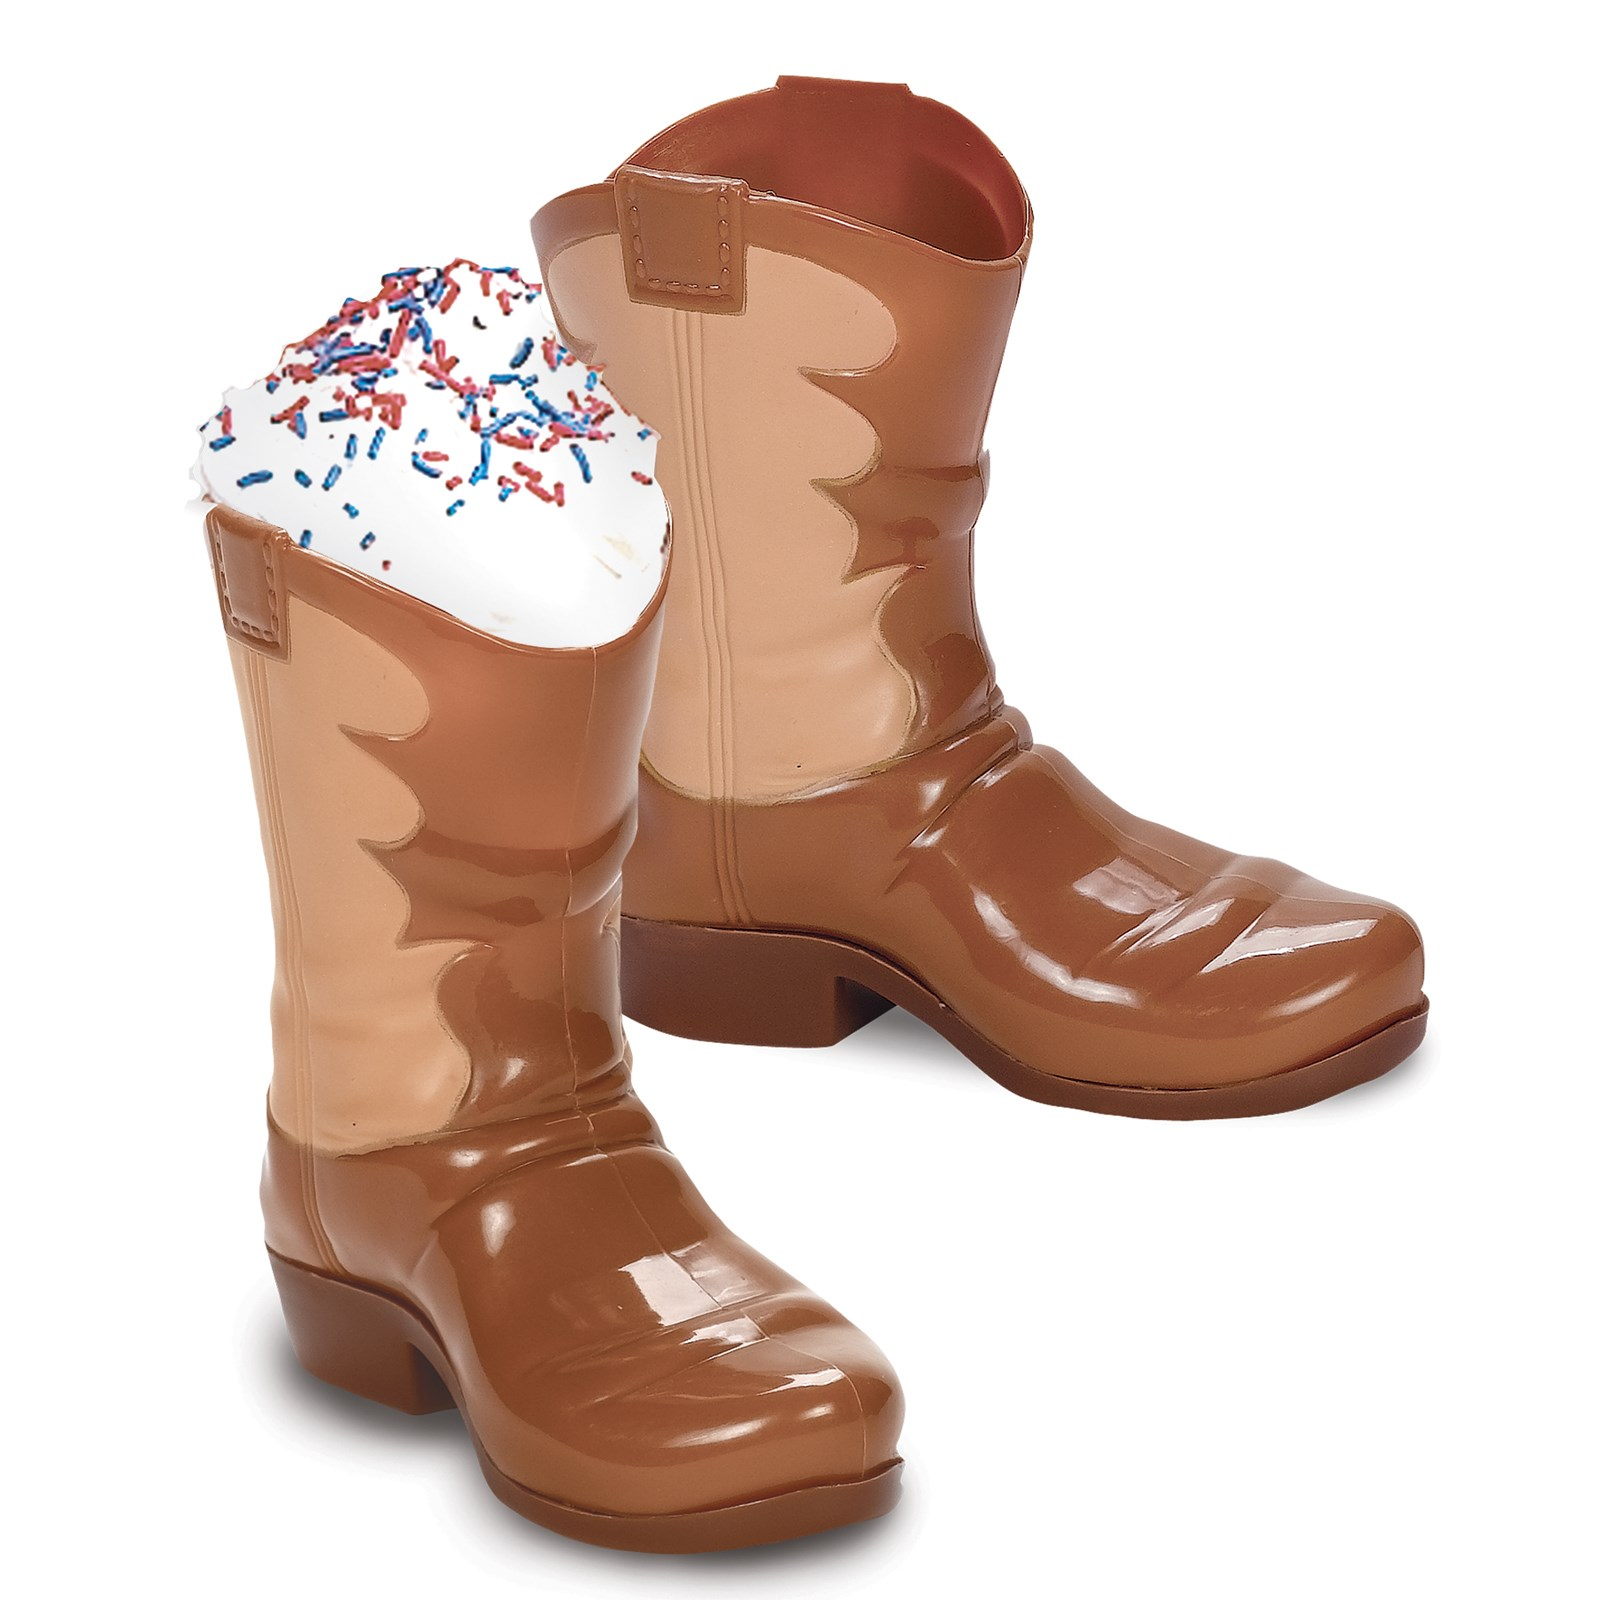 Western boot molded cup choose from 1 4 8 or 16 piece packs default image western boot molded cup choose from 1 4 8 floridaeventfo Images